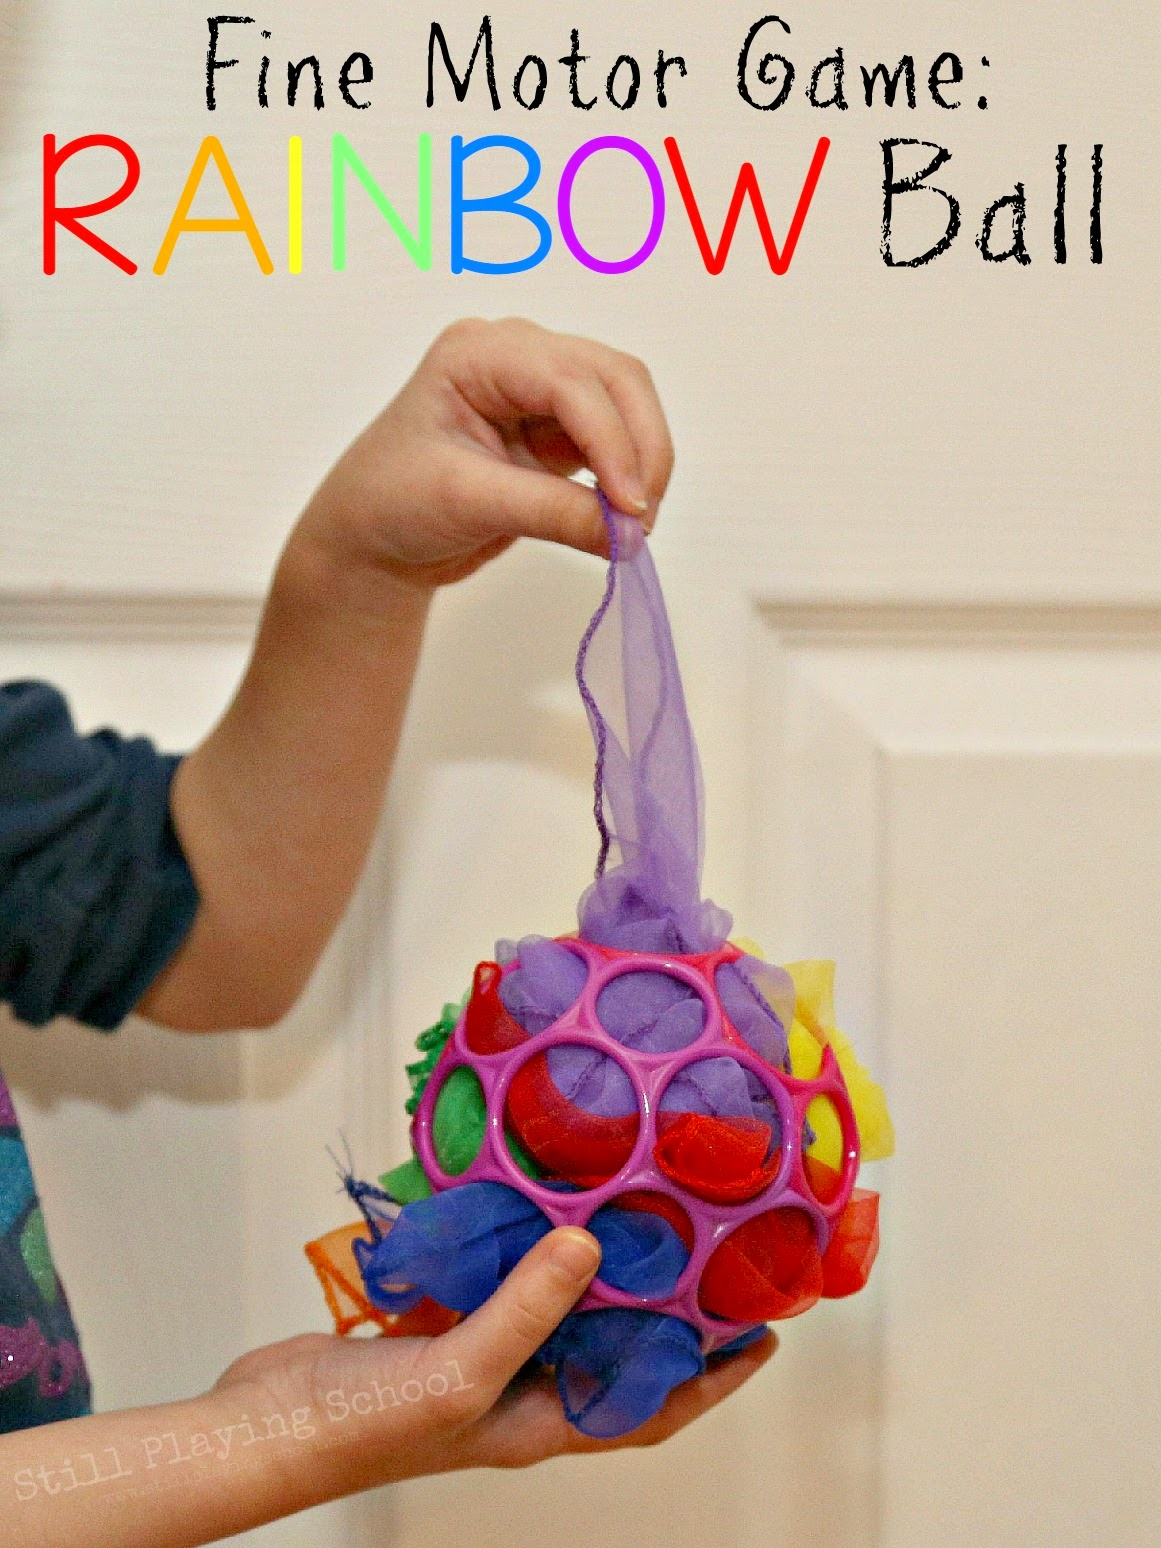 Fine motor rainbow ball game still playing school for Small motor activities for infants